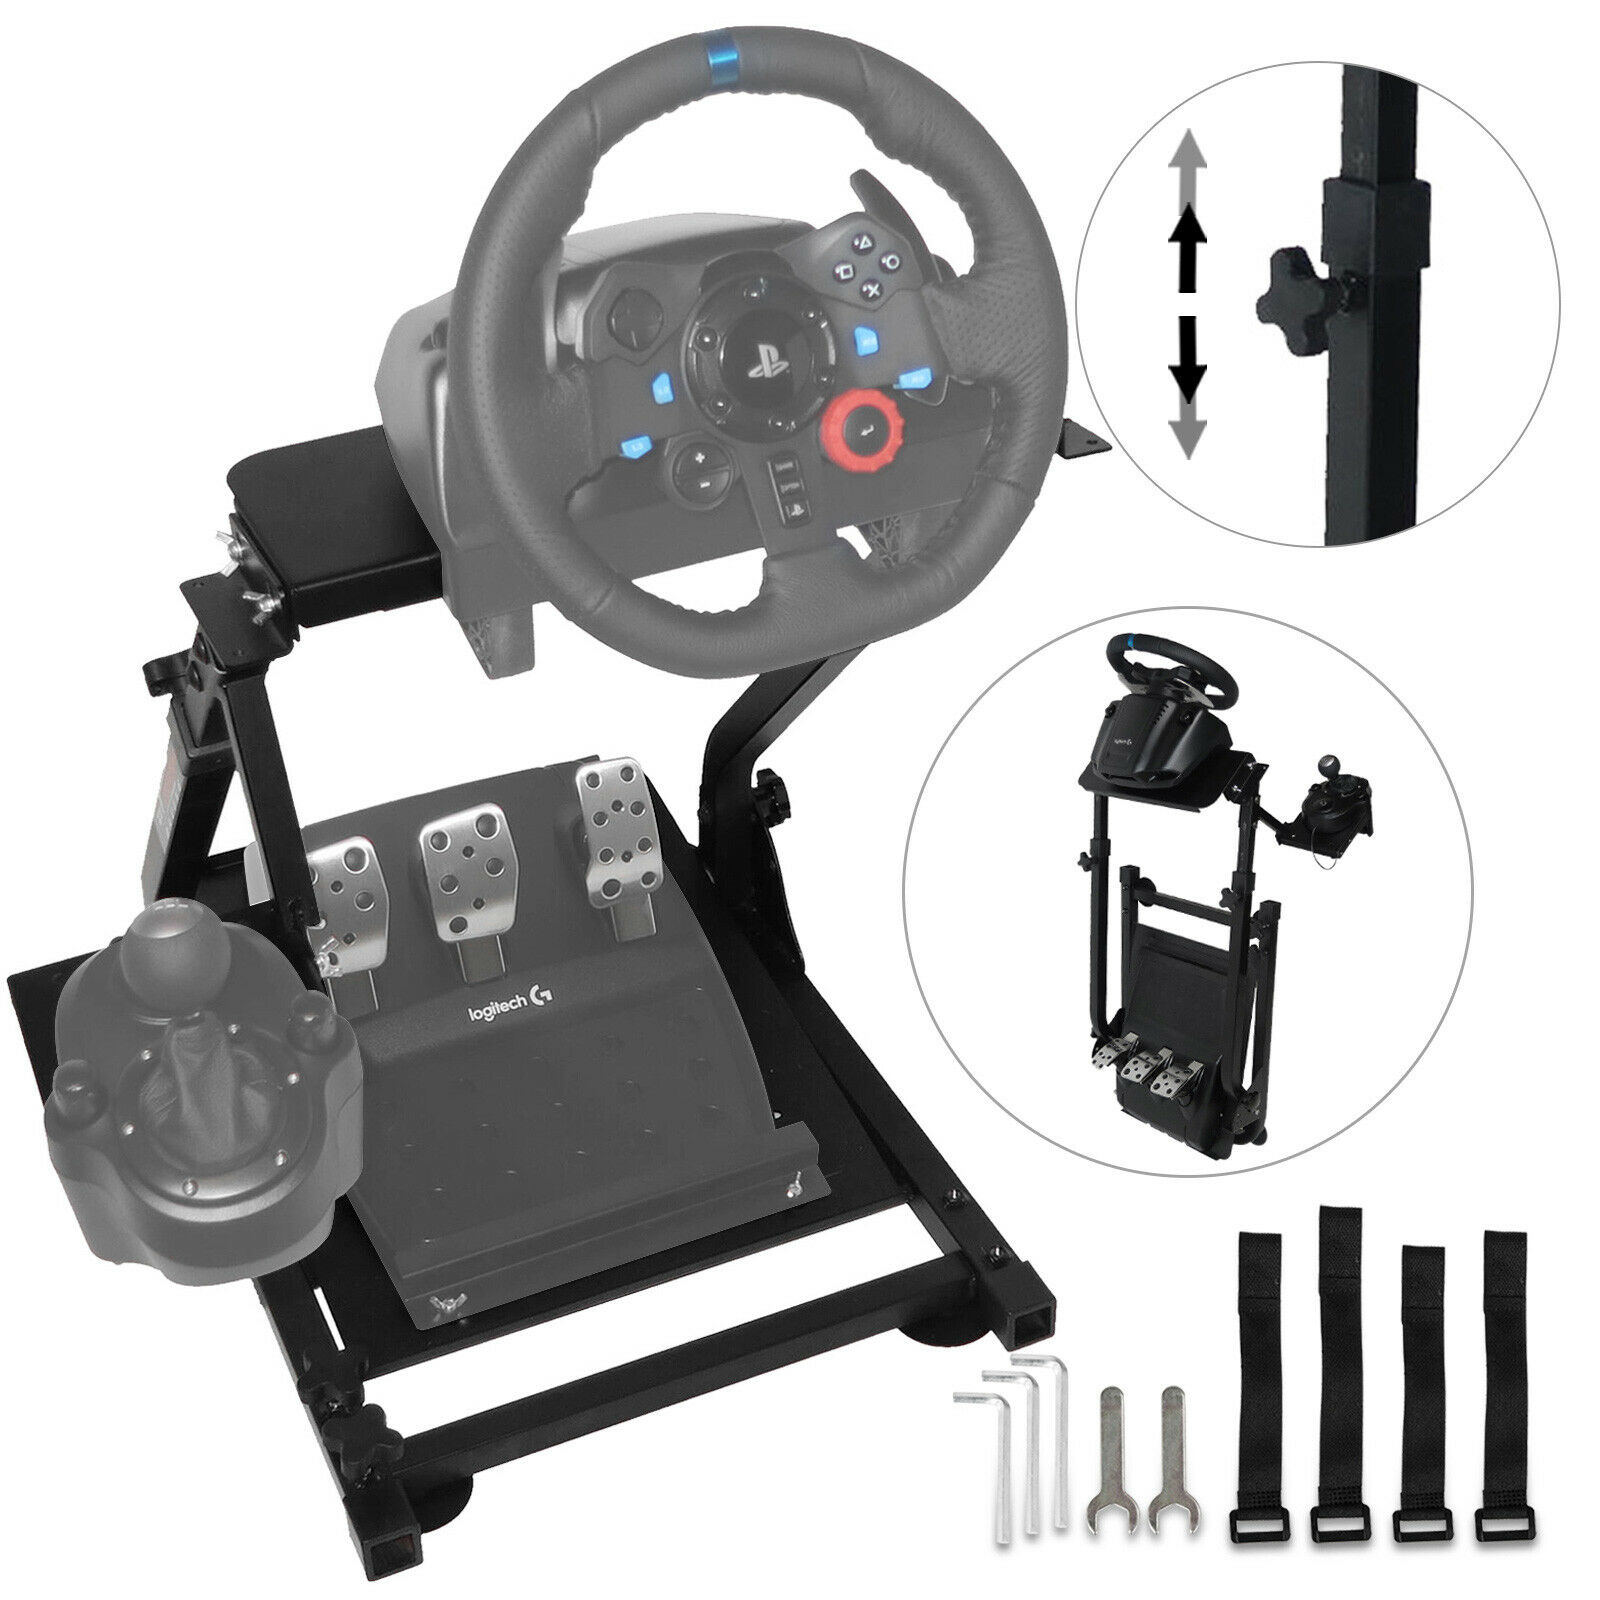 Logitech Racing Simulator Steering Wheel Stand For G27 G29 PS4 G920 T300RS 458 T80 T300RS, TX F458 & T500RS